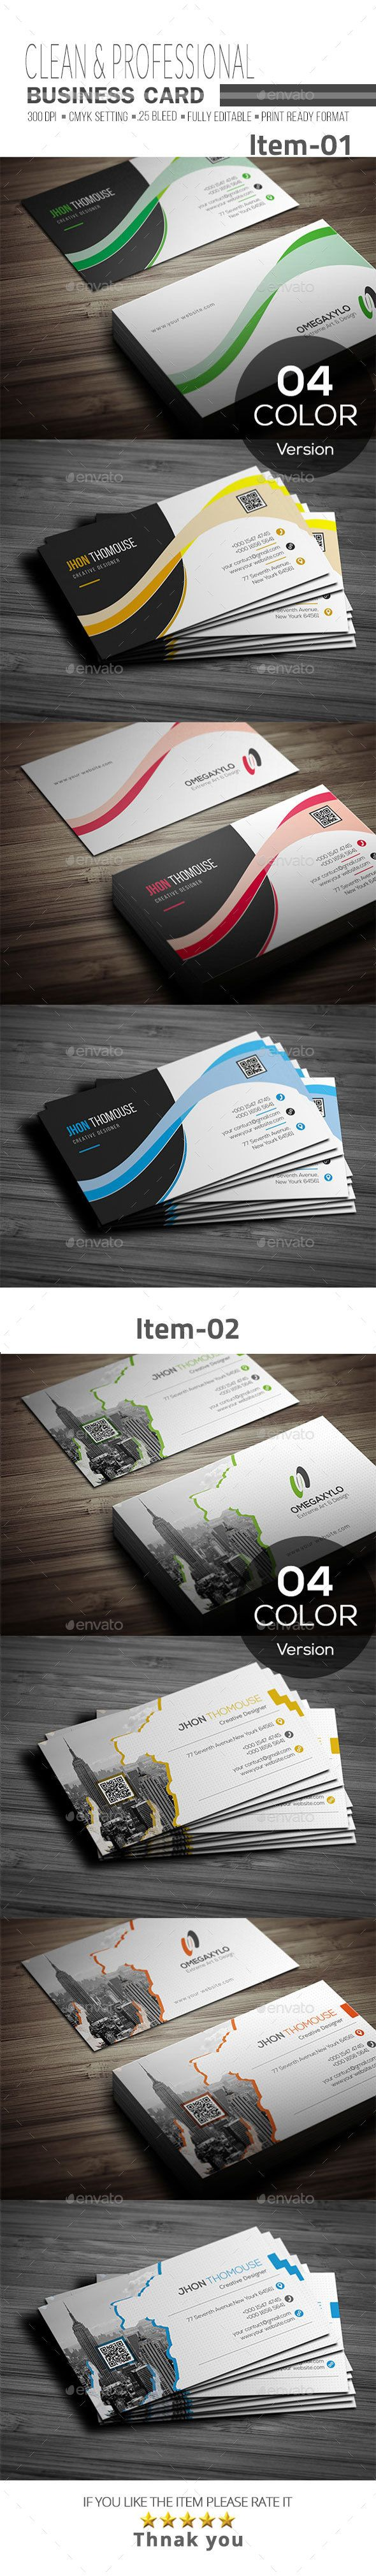 1658 best Business Card images on Pinterest